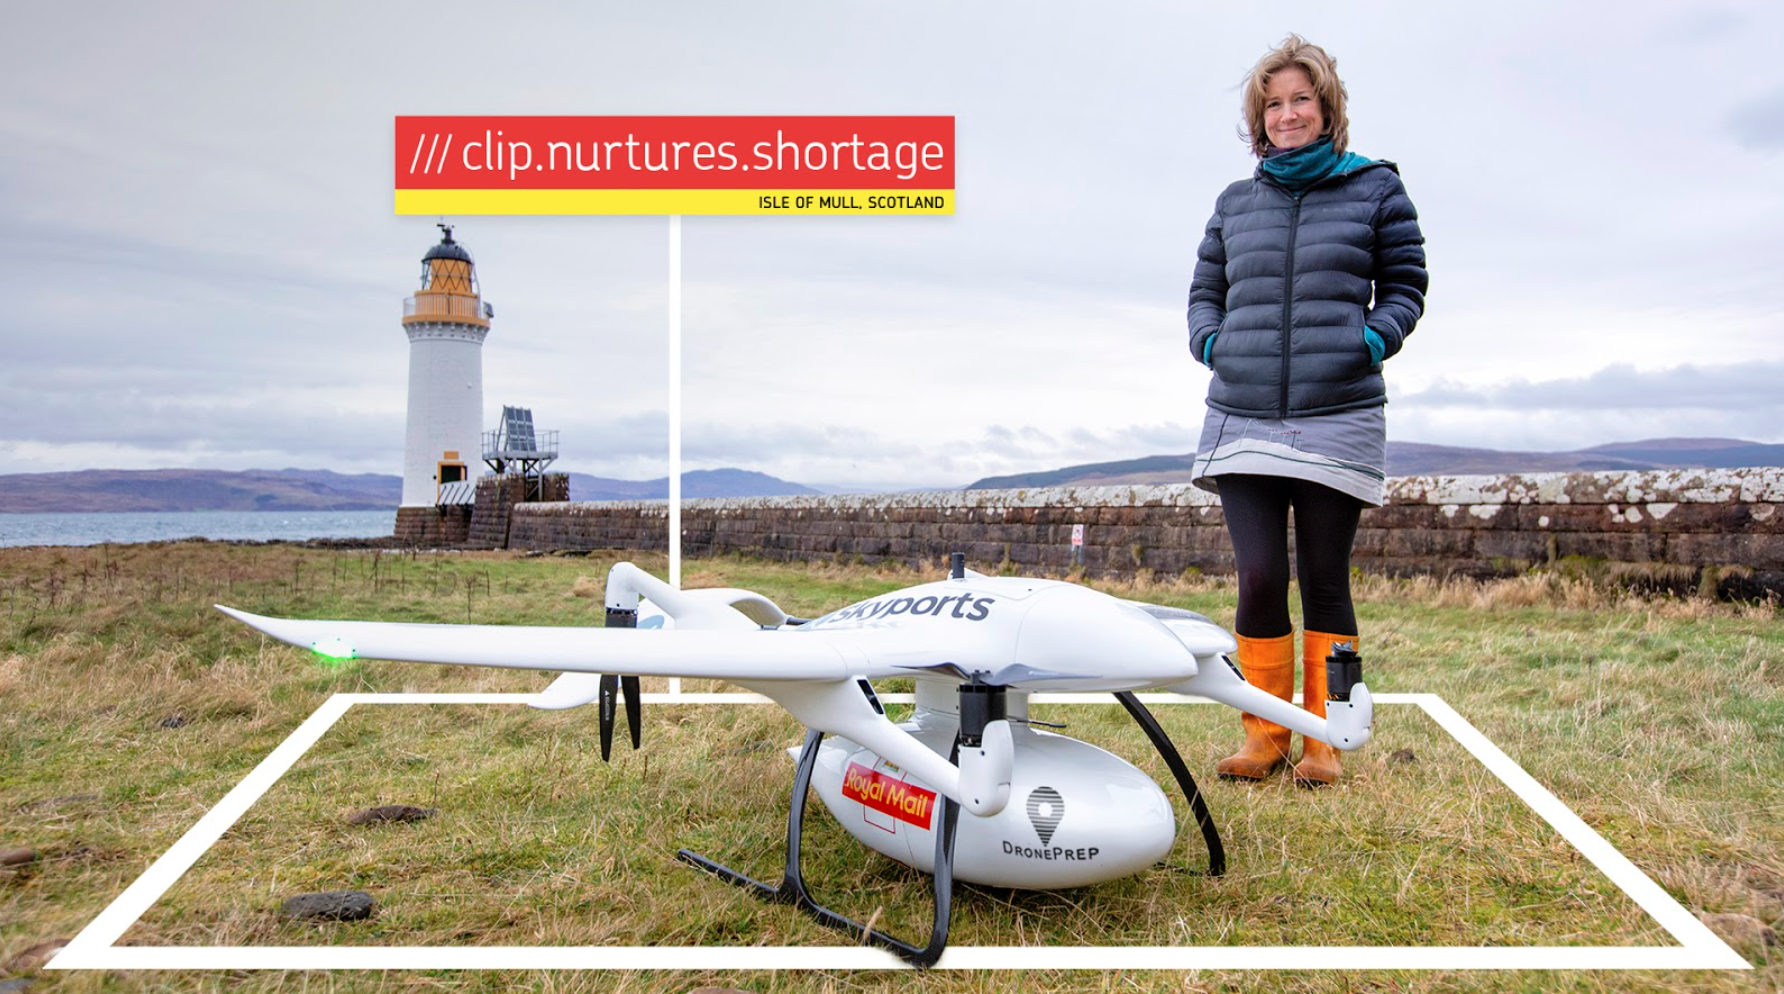 Royal Mail partners with DronePrep, Skyports and what3words to become first UK parcel carrier to use a drone to deliver a parcel